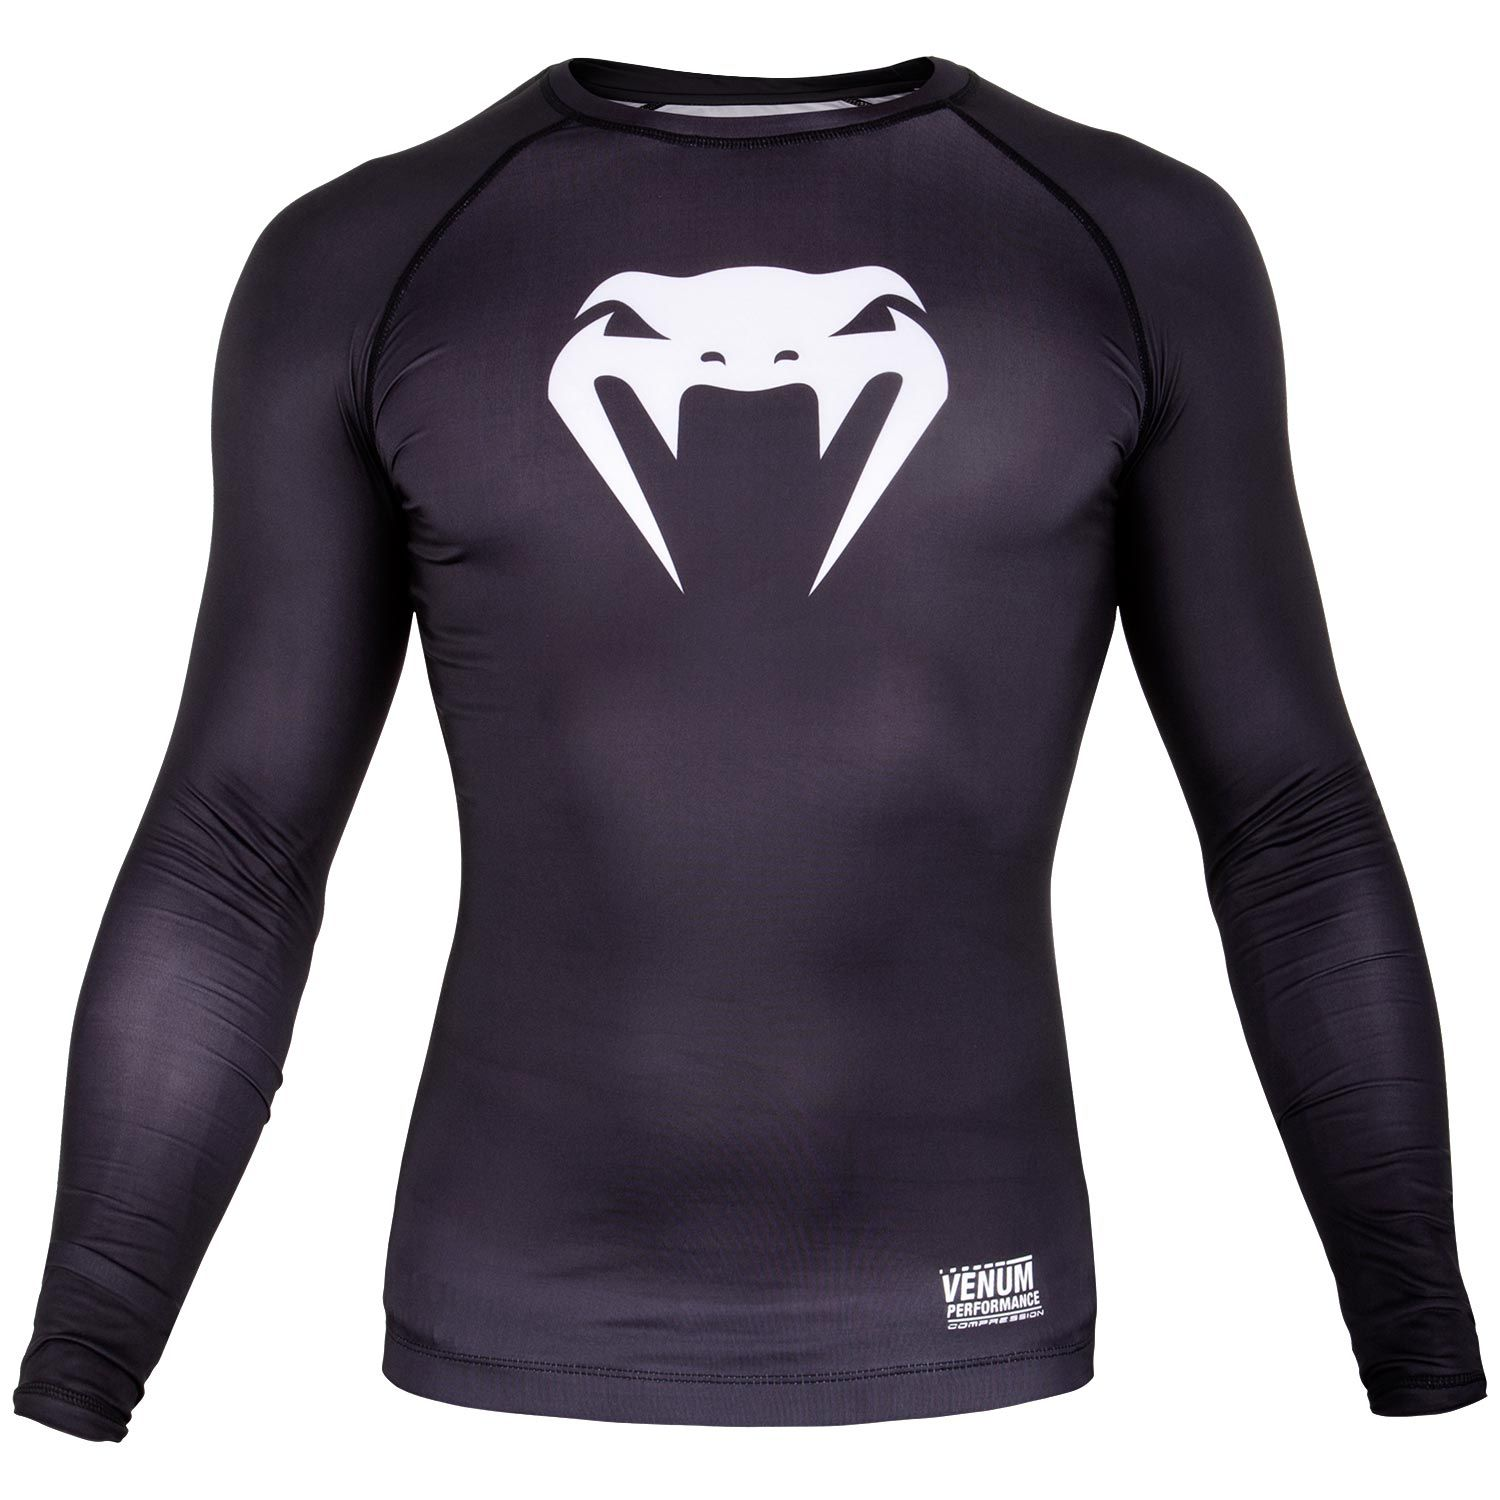 Venum Contender 3.0 Compression T-shirt - Long Sleeves - Black/White